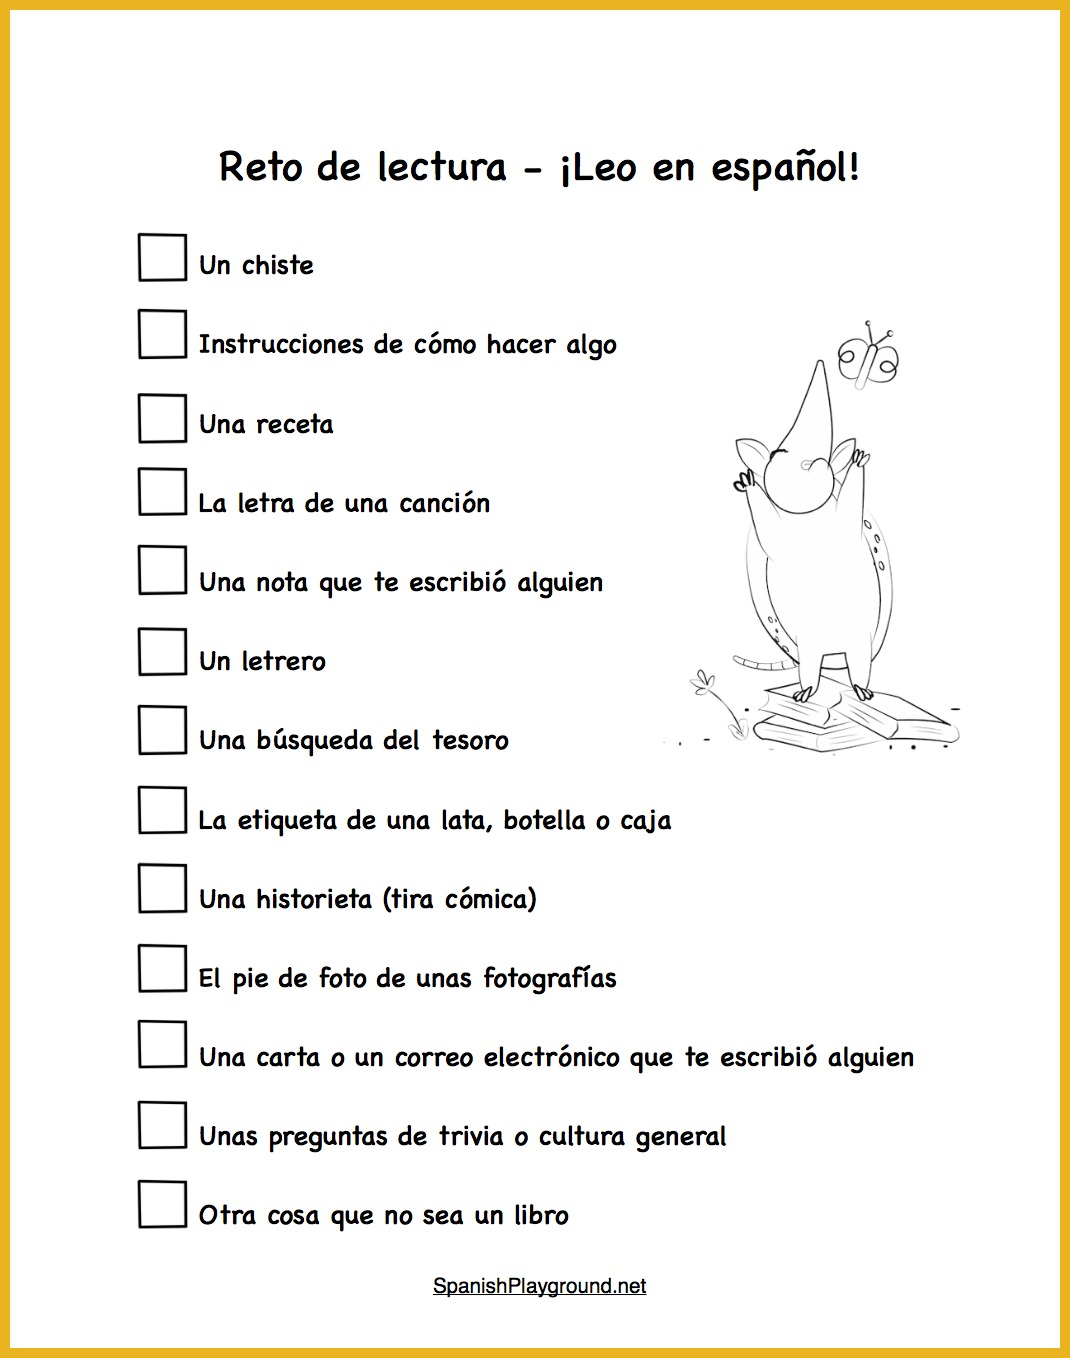 Spanish Reading Practice: 15 Things to Read - Spanish Playground